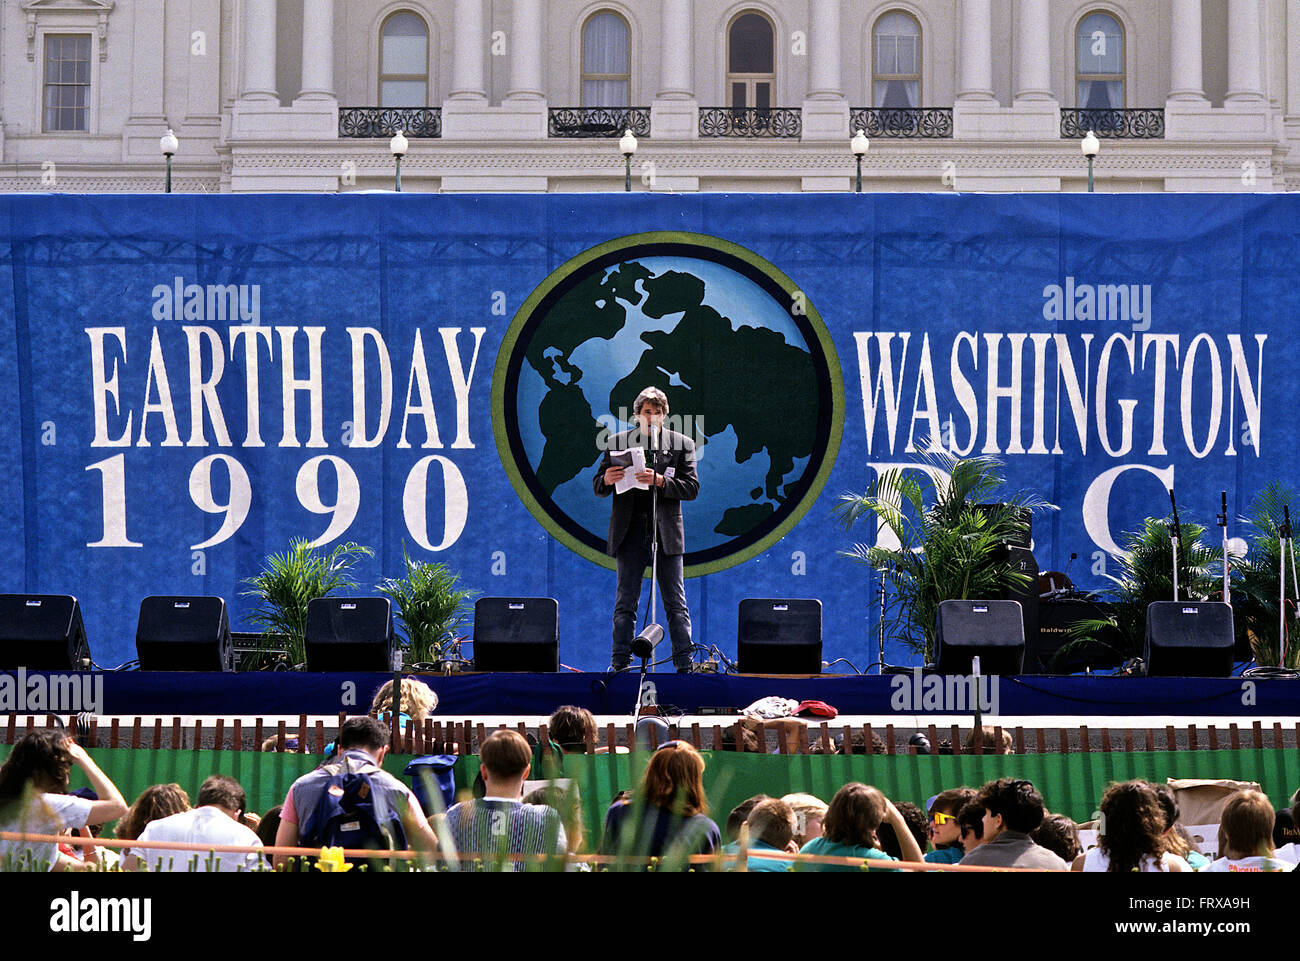 Washington, DC., USA 22nd April, 1990 Actor Richard Gere addresses the crowd of thousands that gathered on the west - Stock Image